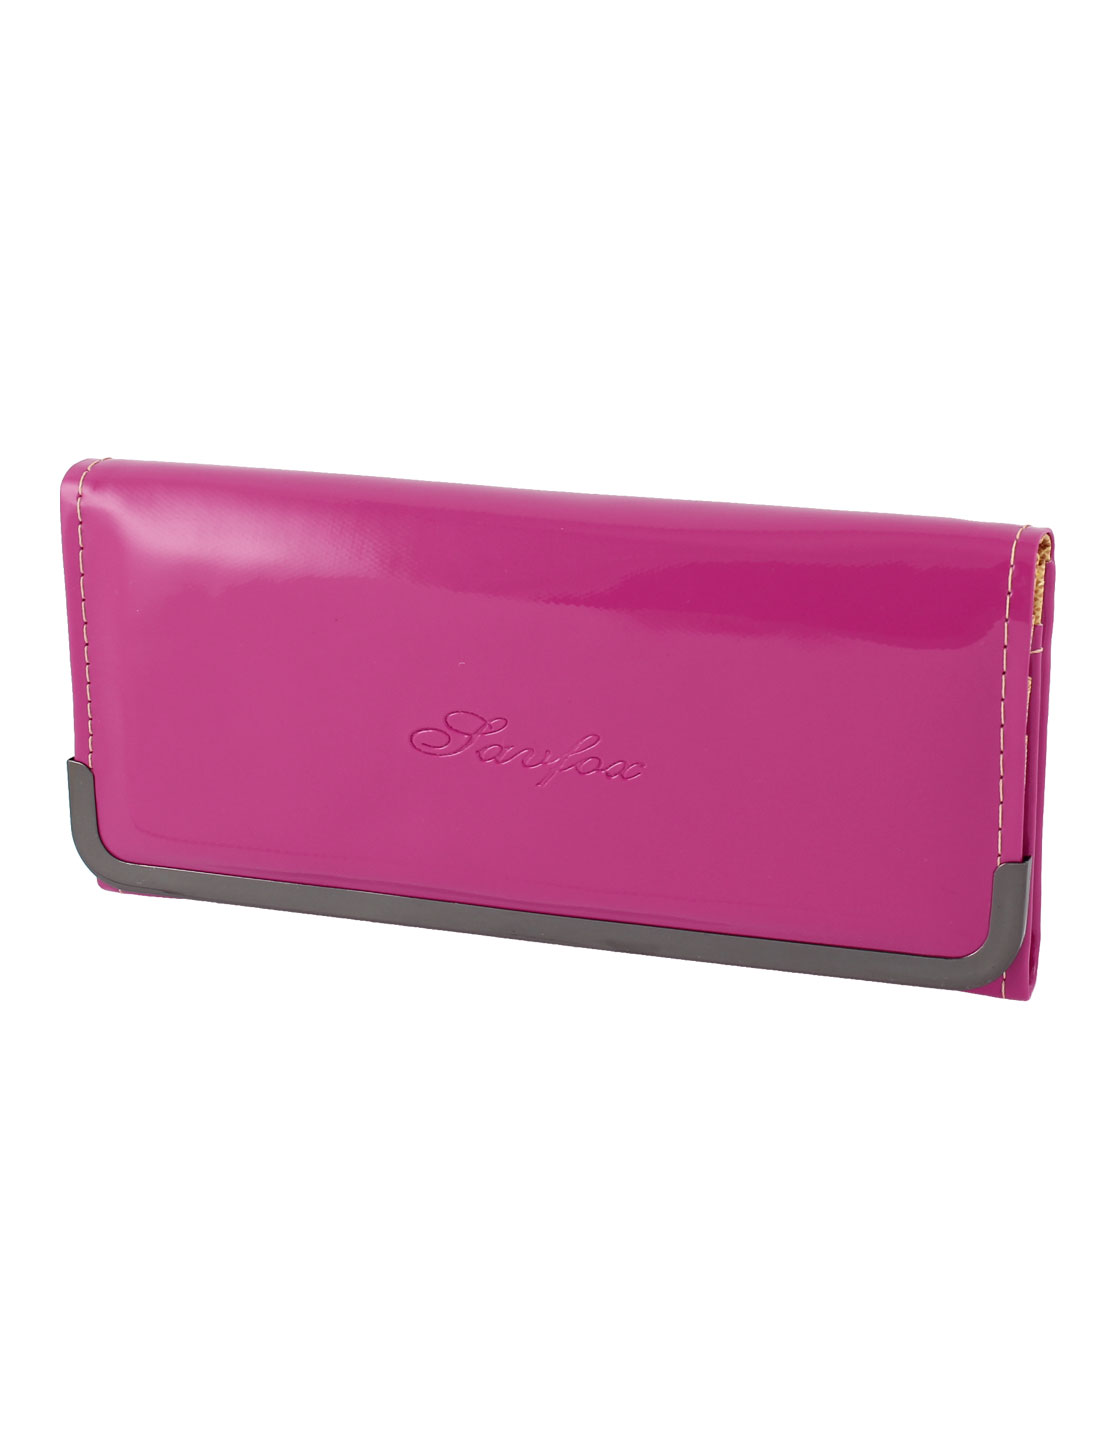 Lady Metal Frame Patent Leather 4 Layers Card Slots Handbag Wallet Purse Fuchsia